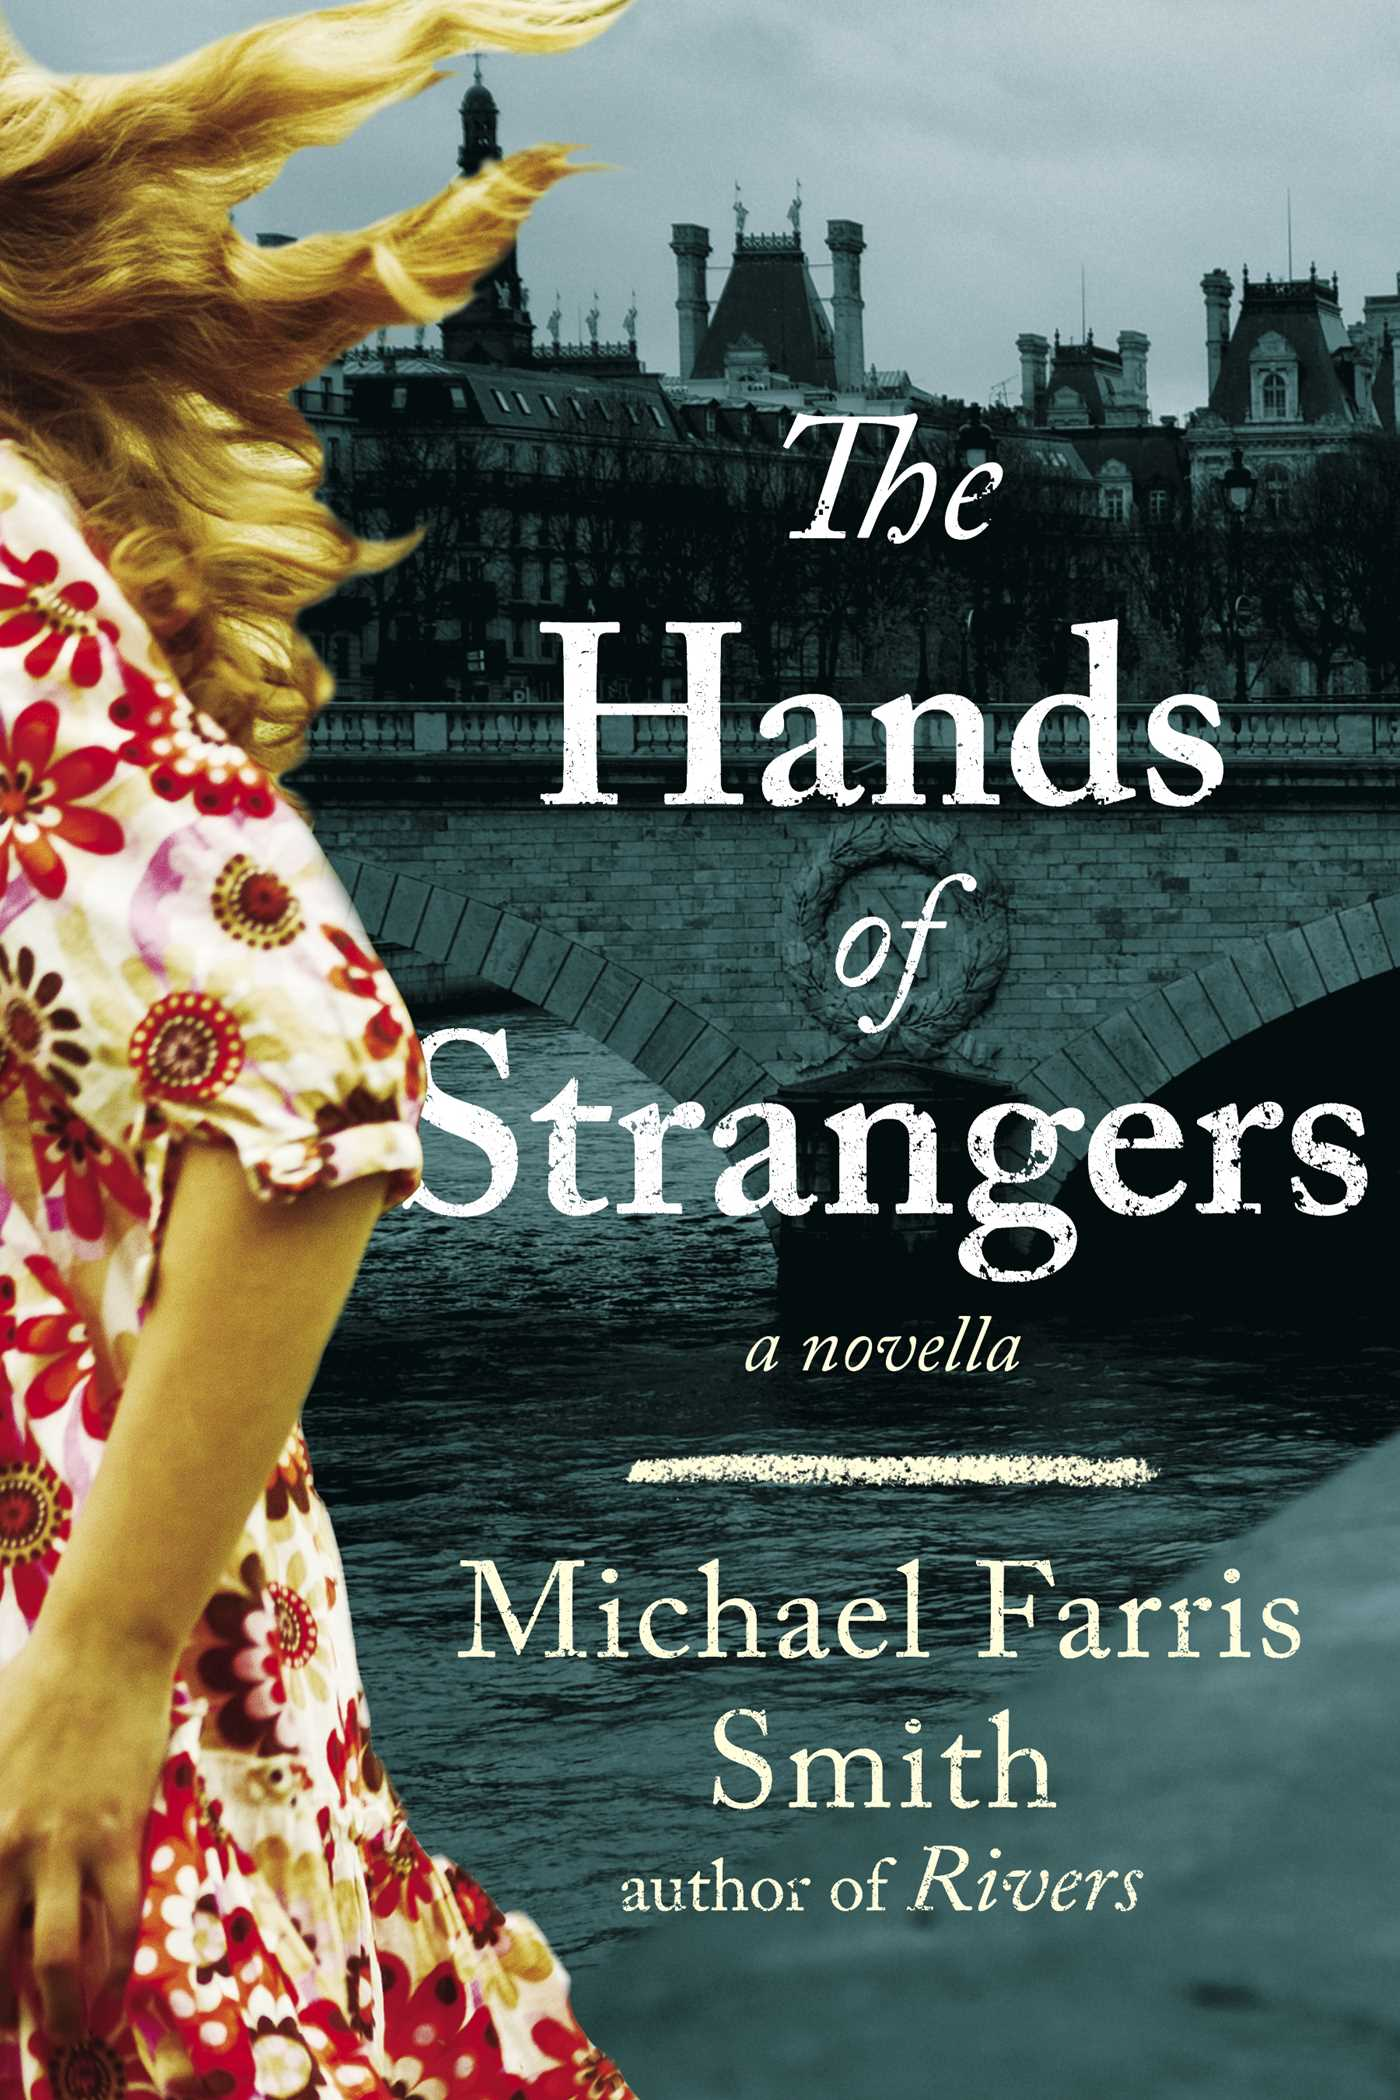 The-hands-of-strangers-9781476788470_hr